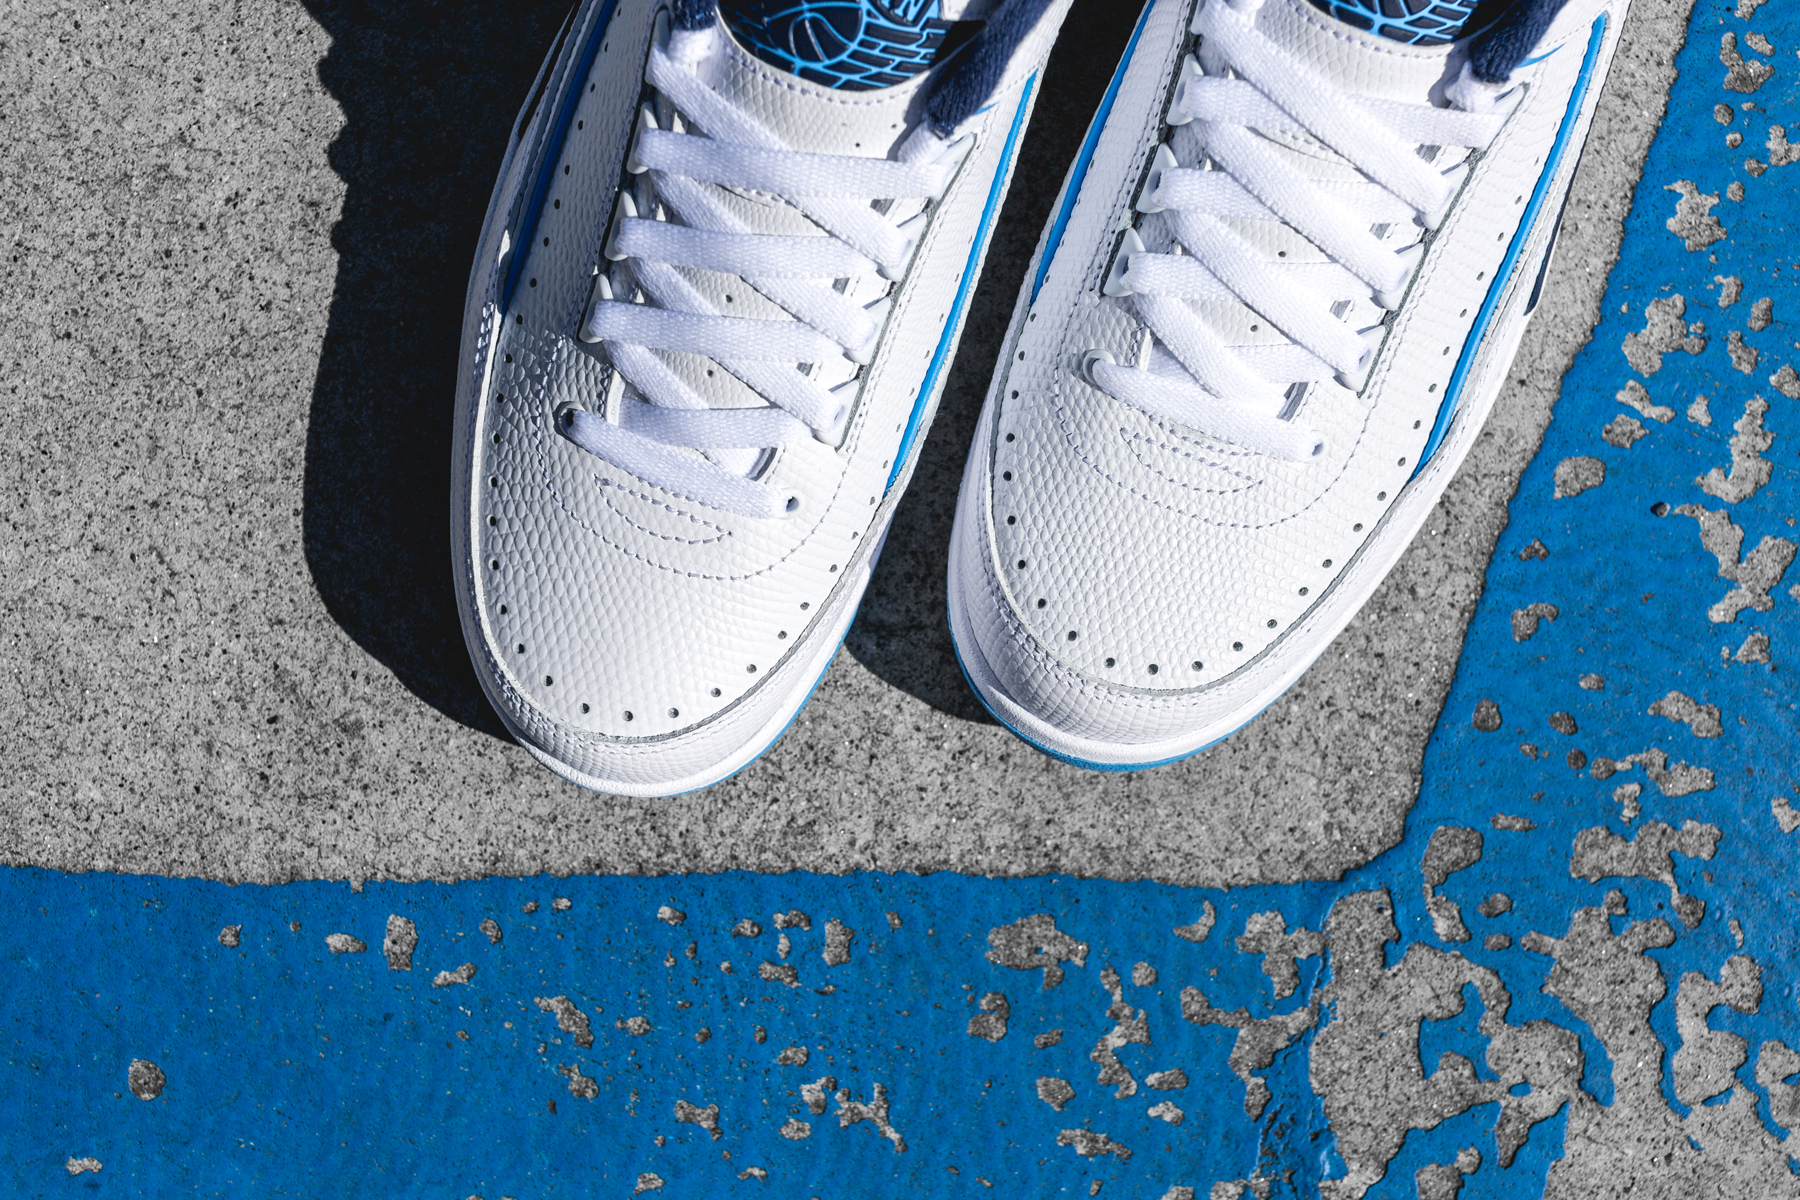 de23f03c1ac Air Jordan 2 Retro Low UNC - Air 23 - Air Jordan Release Dates ...